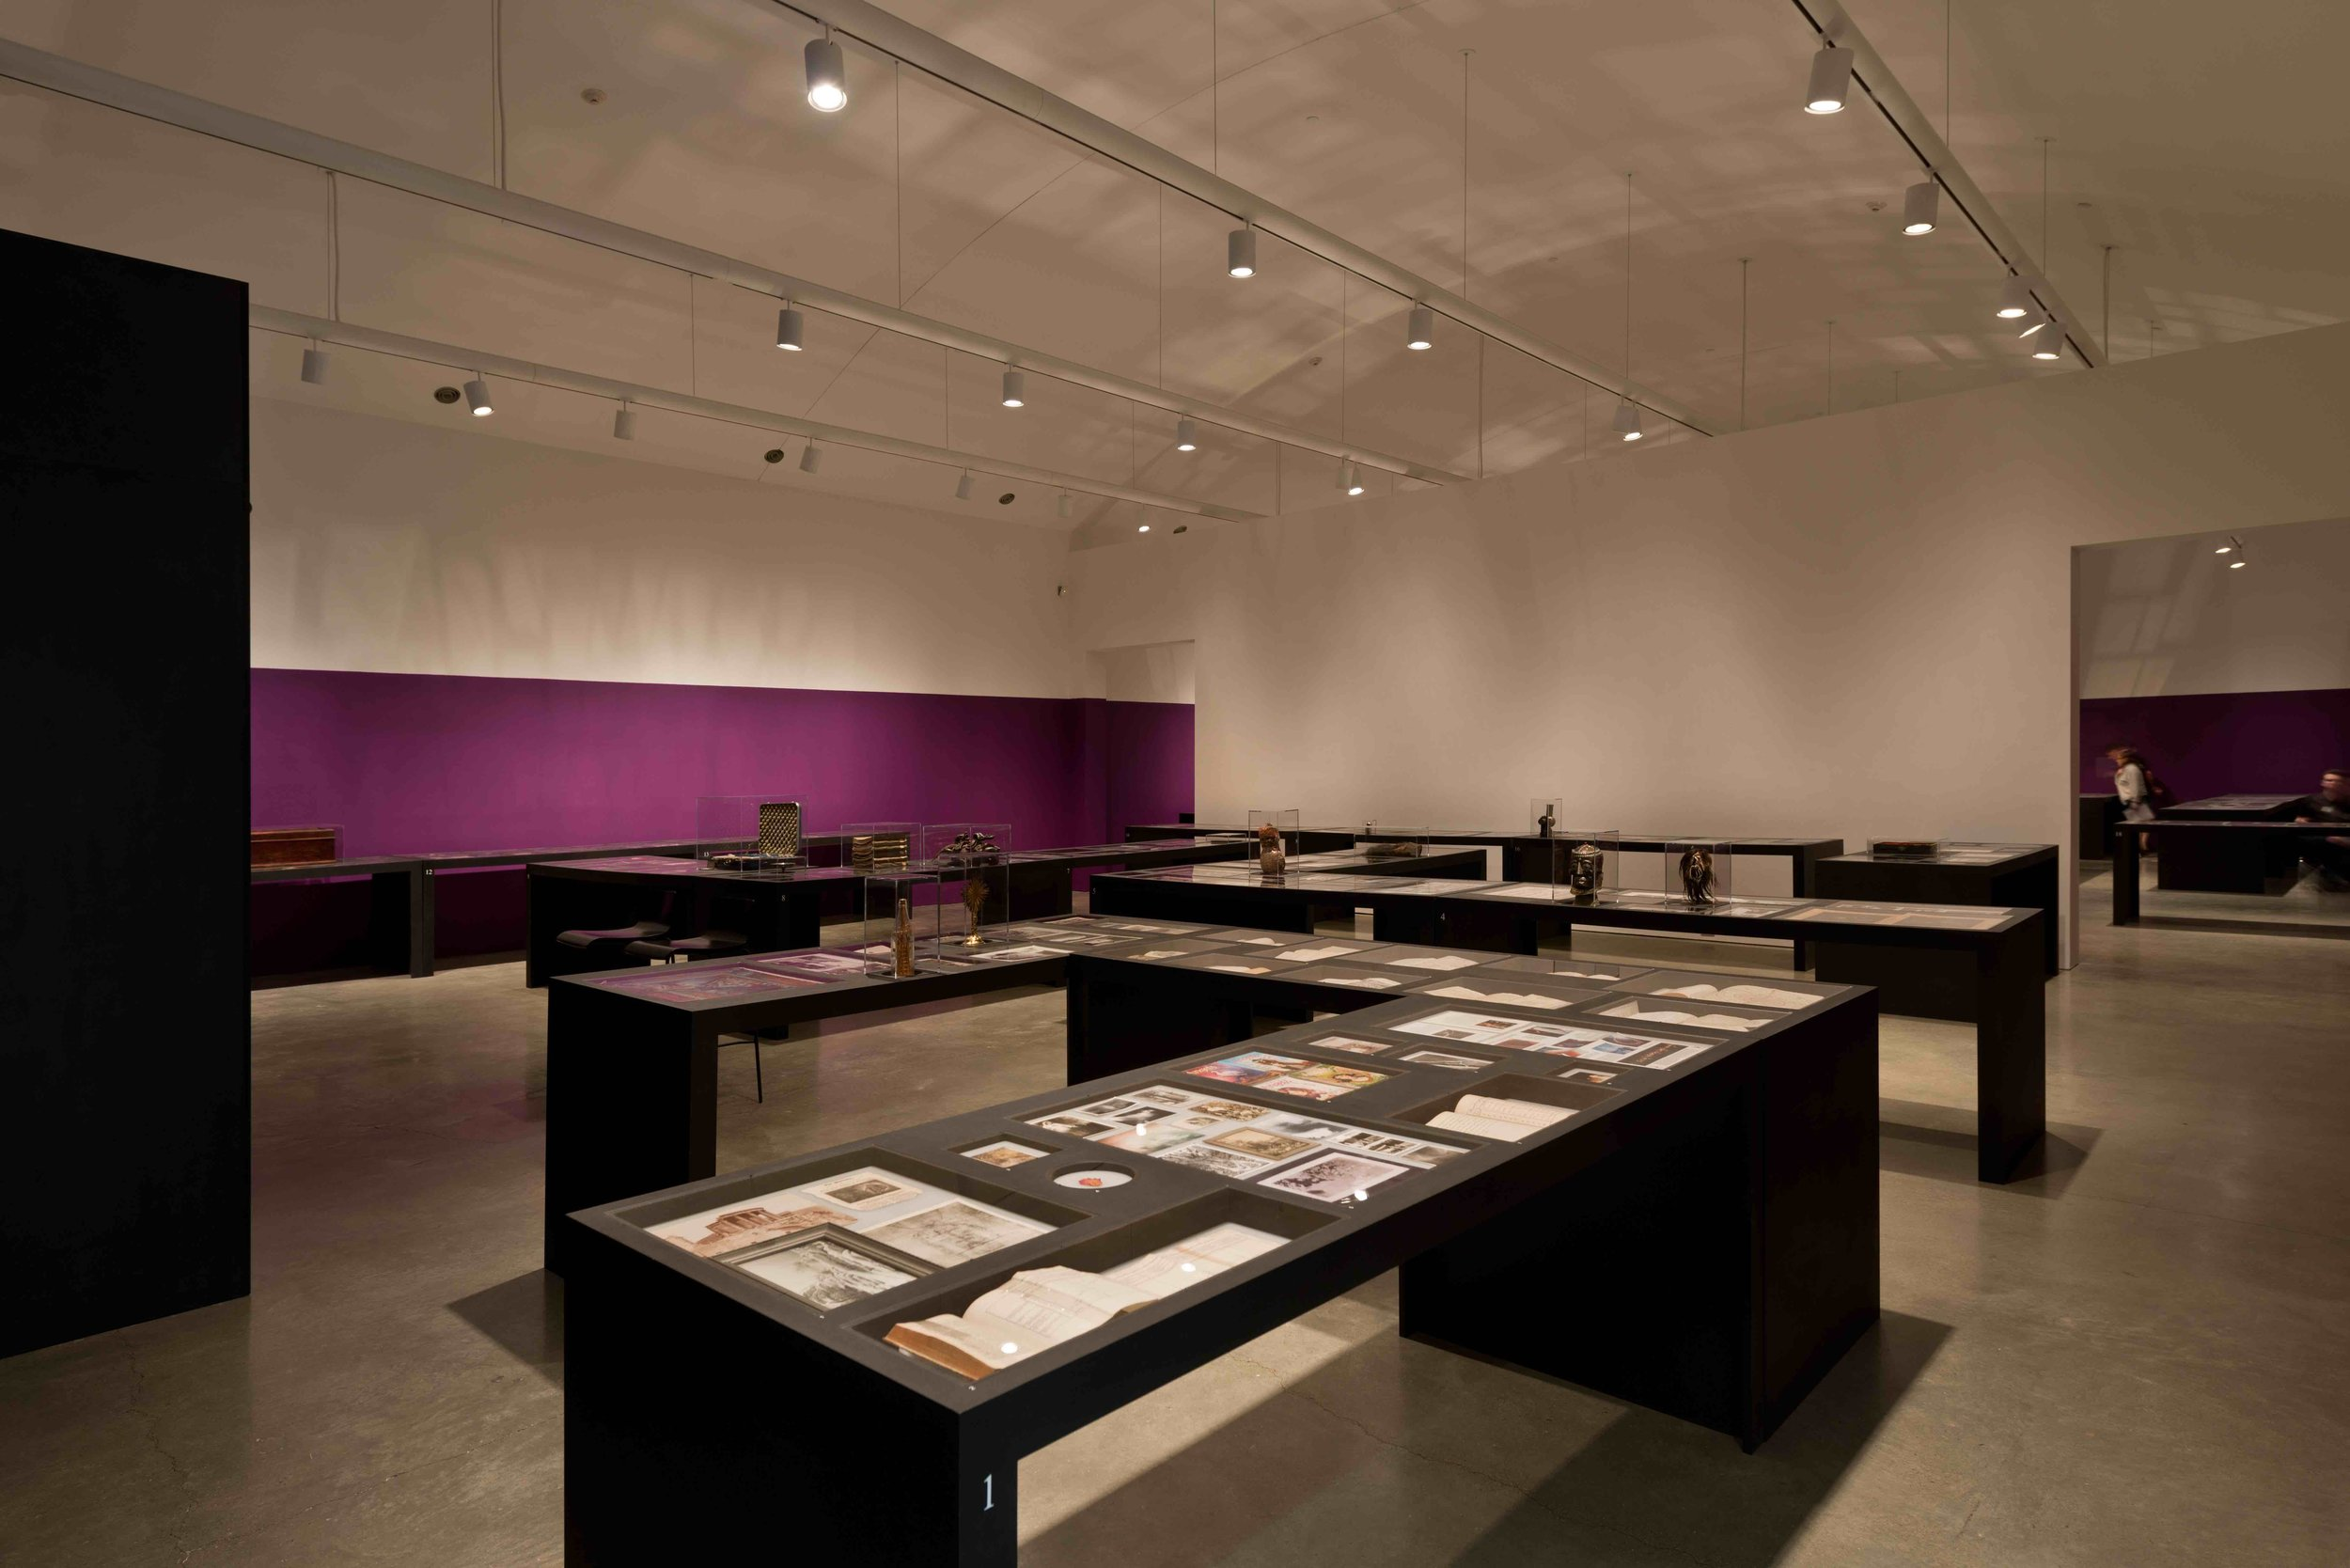 Installation View - The Archive